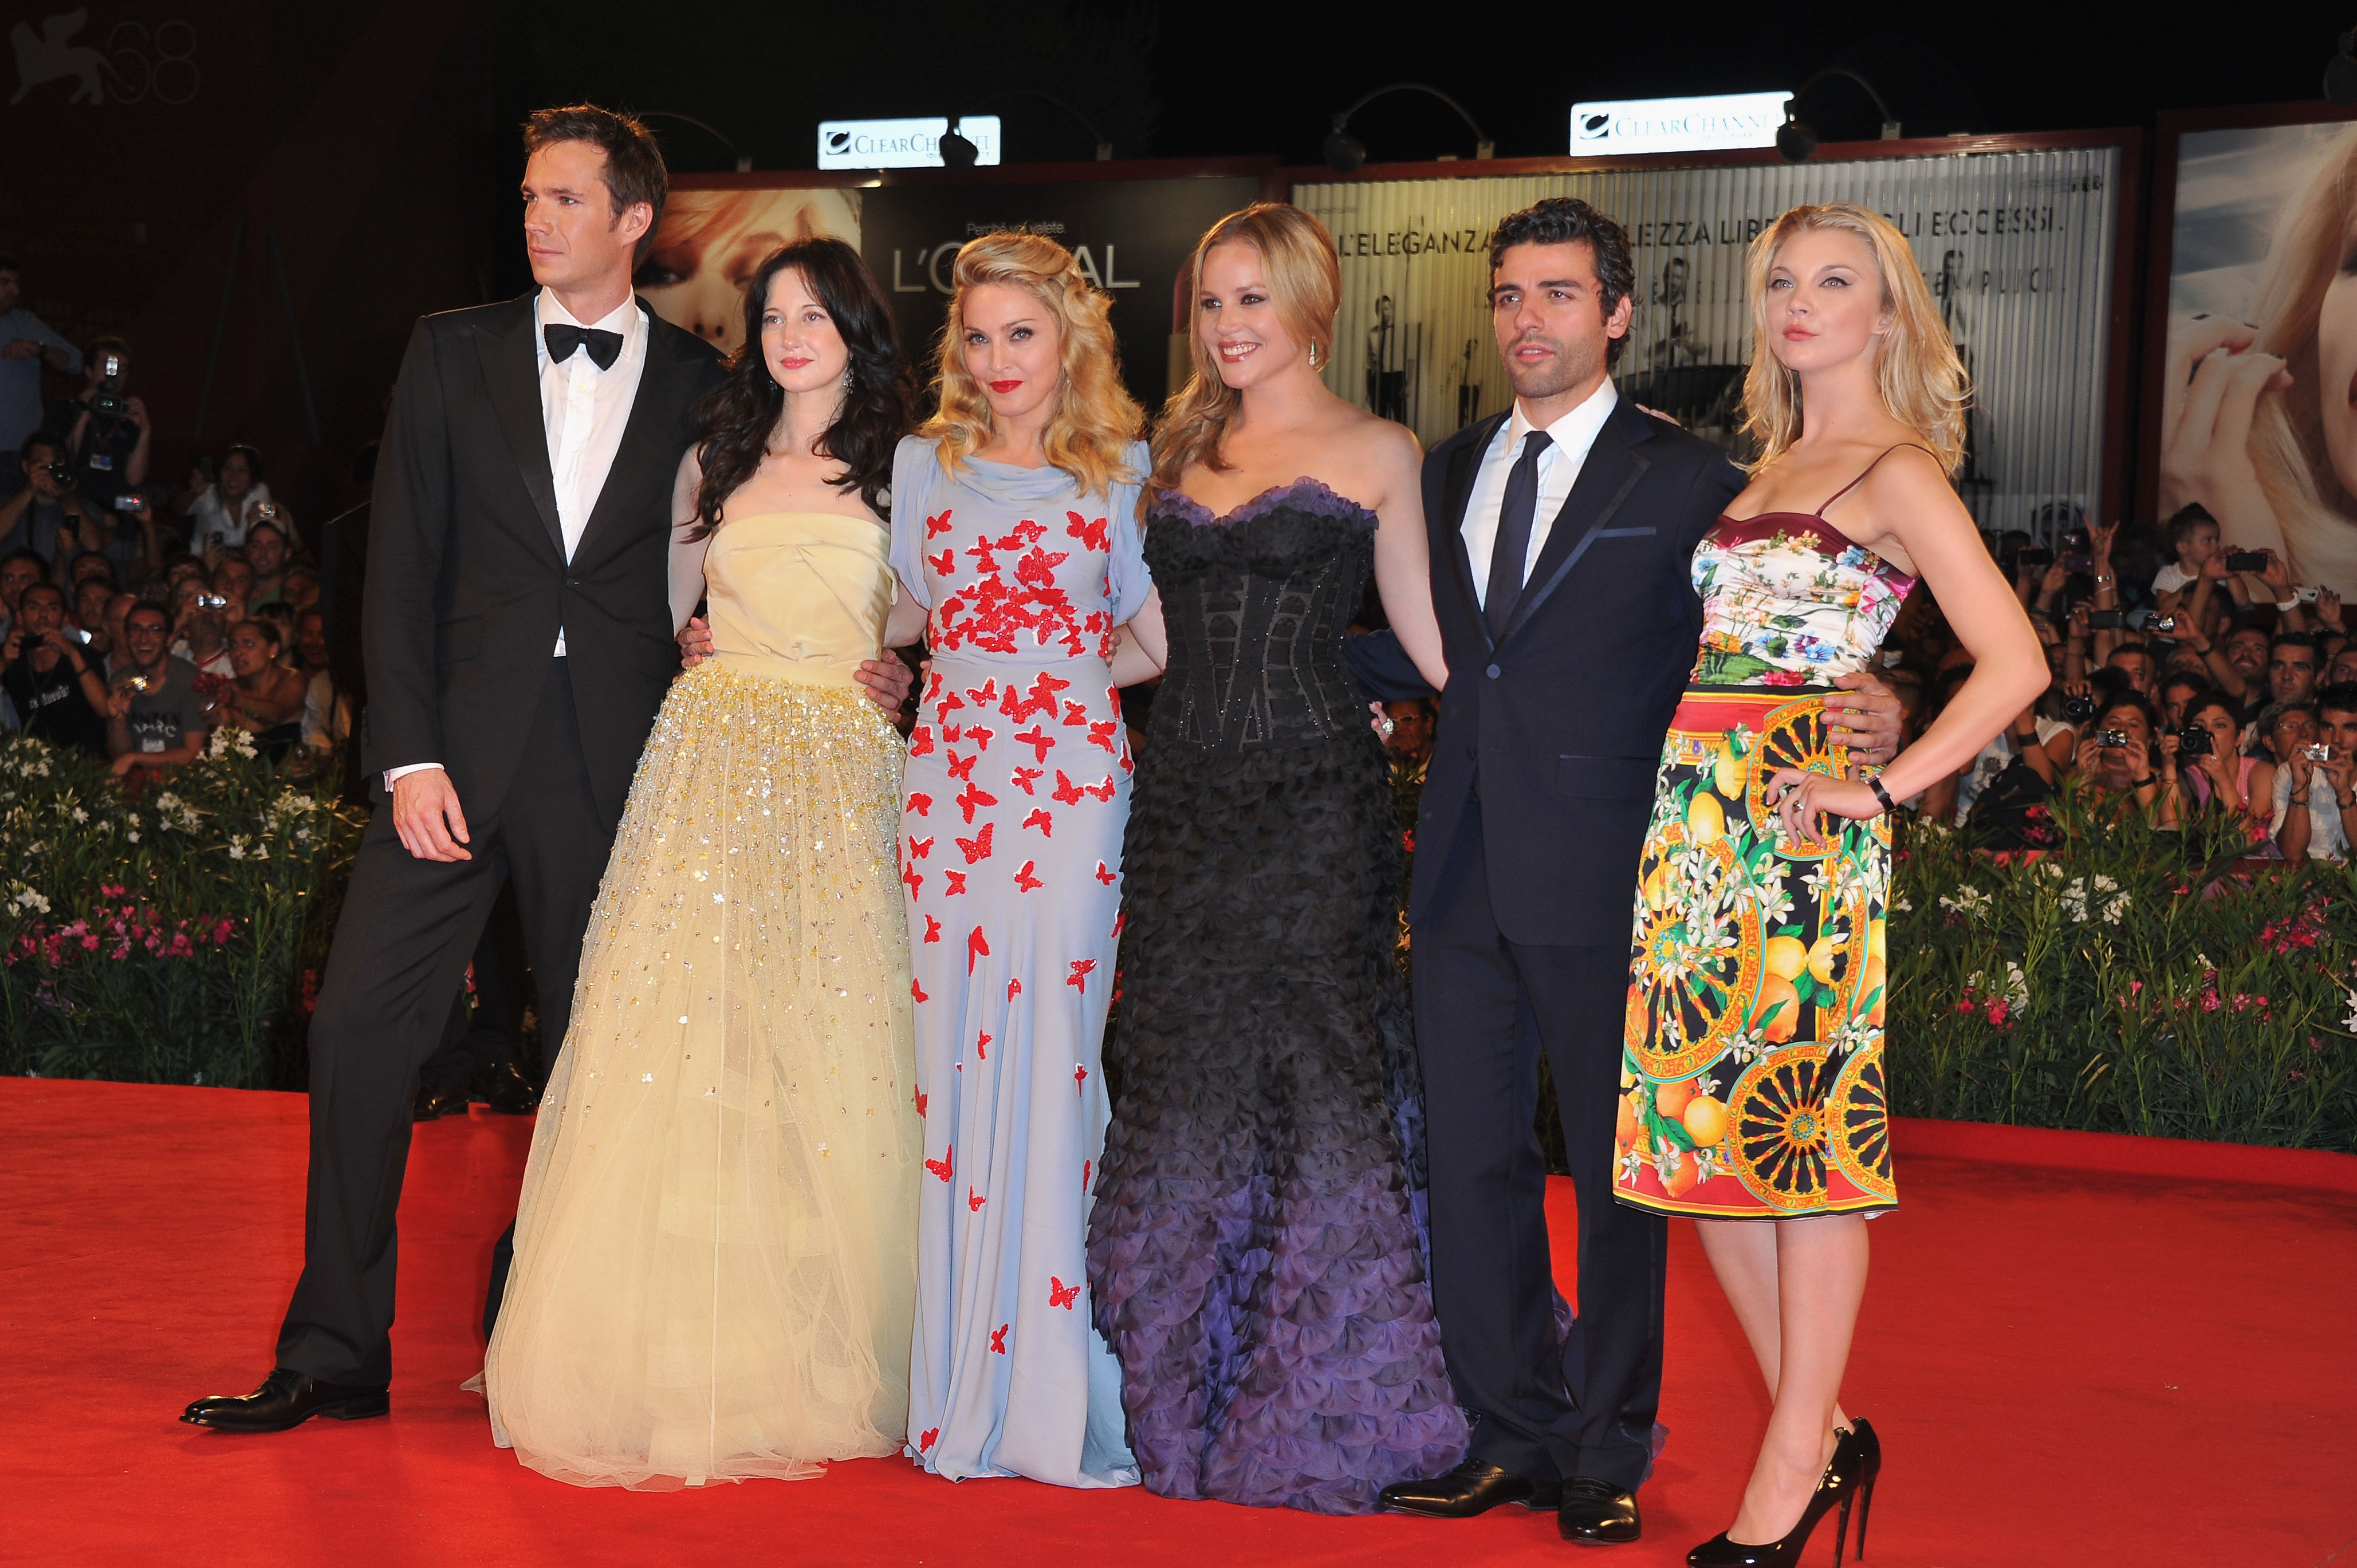 The W.E. cast and director Madonna line up on the red carpet.